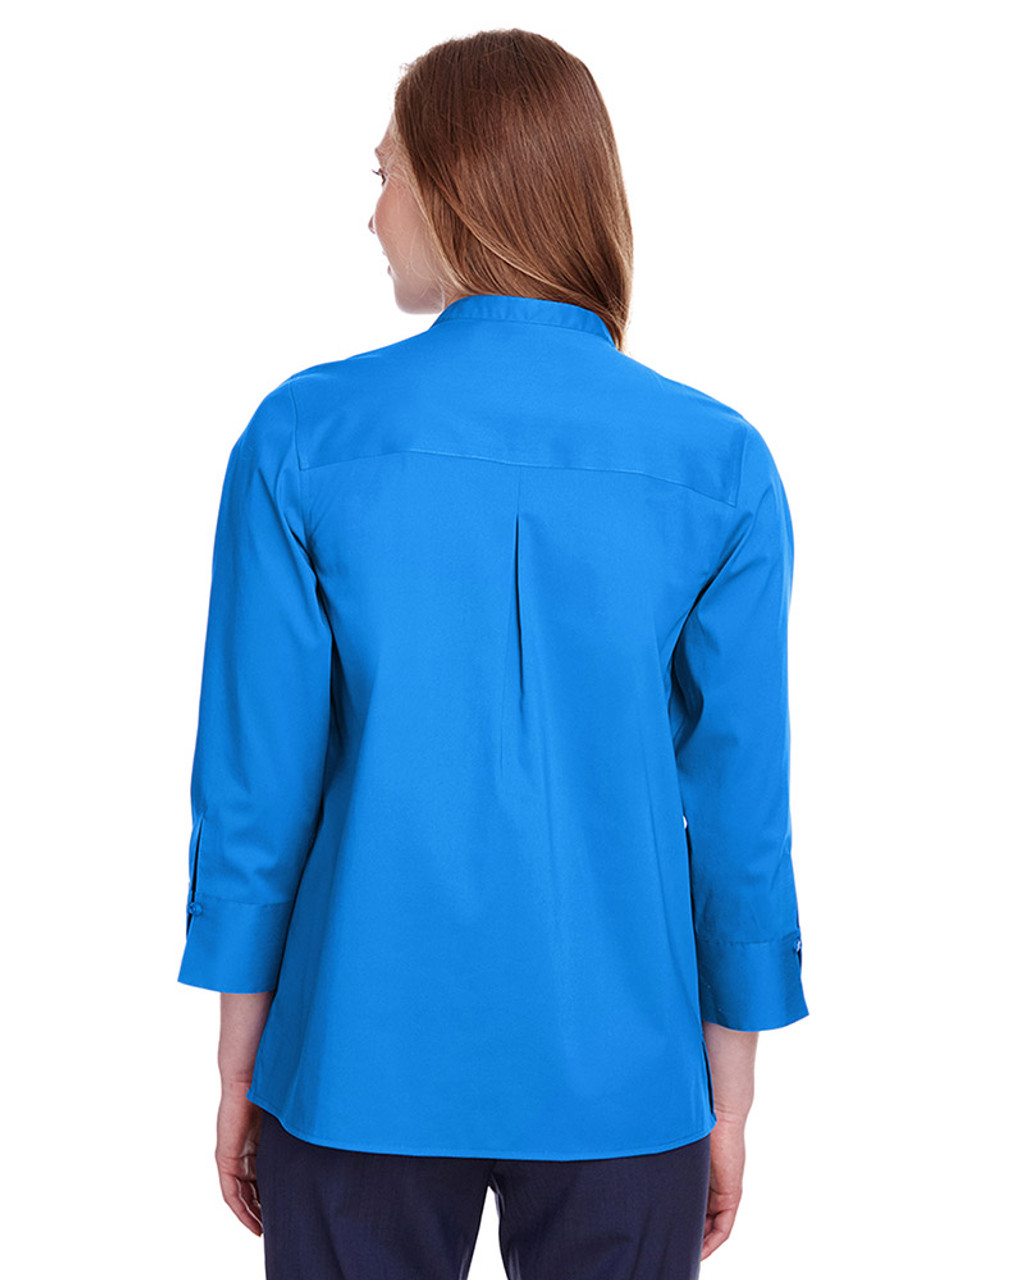 French Blue - DG560W Devon & Jones Ladies' Crown Collection™ Stretch Broadcloth 3/4 Sleeve Blouse | Blankclothing.ca